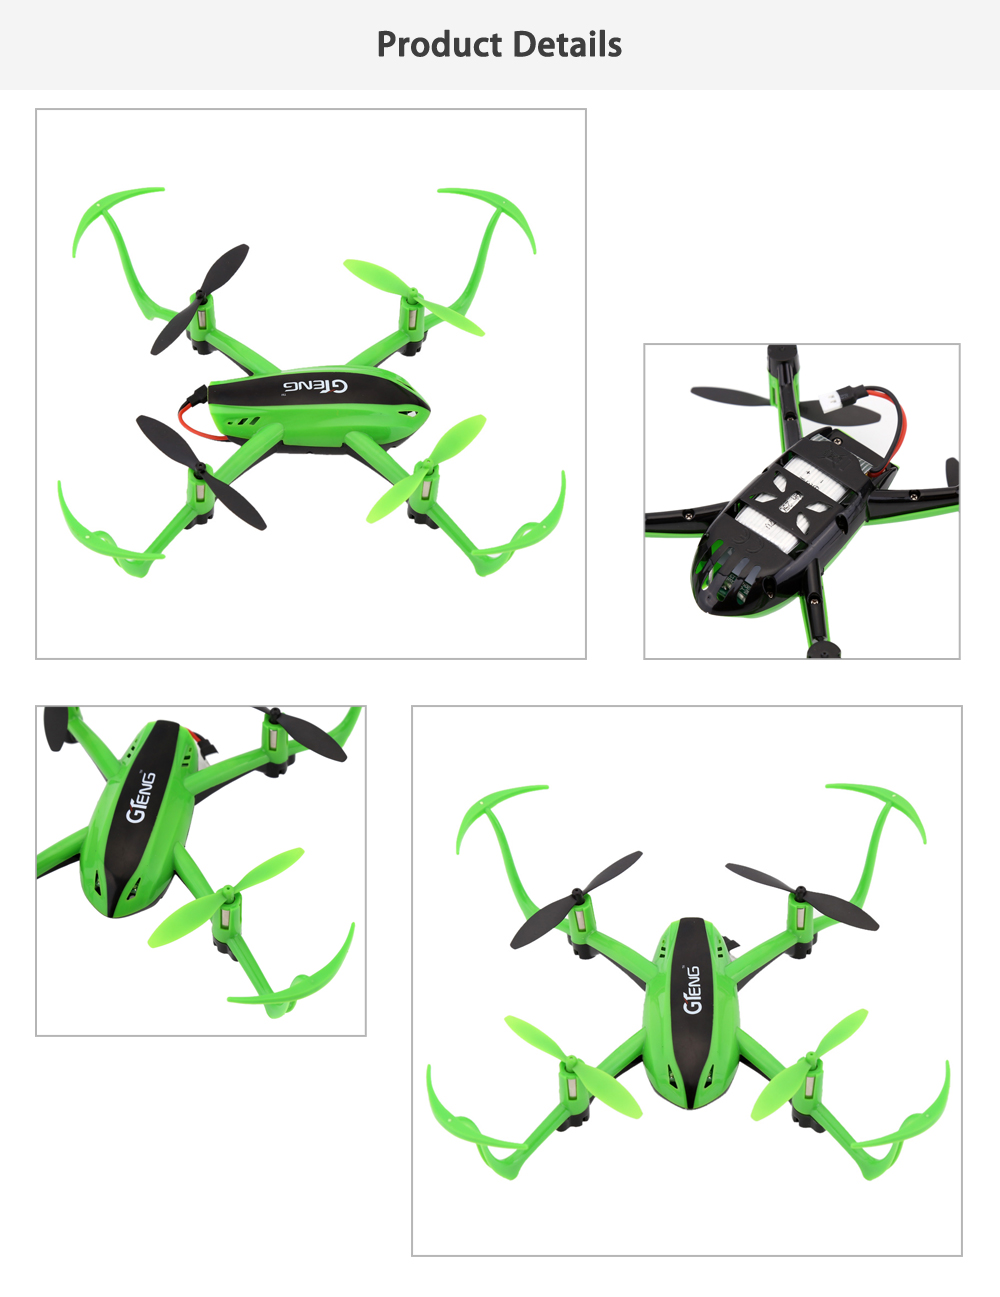 Gteng T903 2.4GHz 4CH 6-axis-gyro Inverted RC Quadcopter